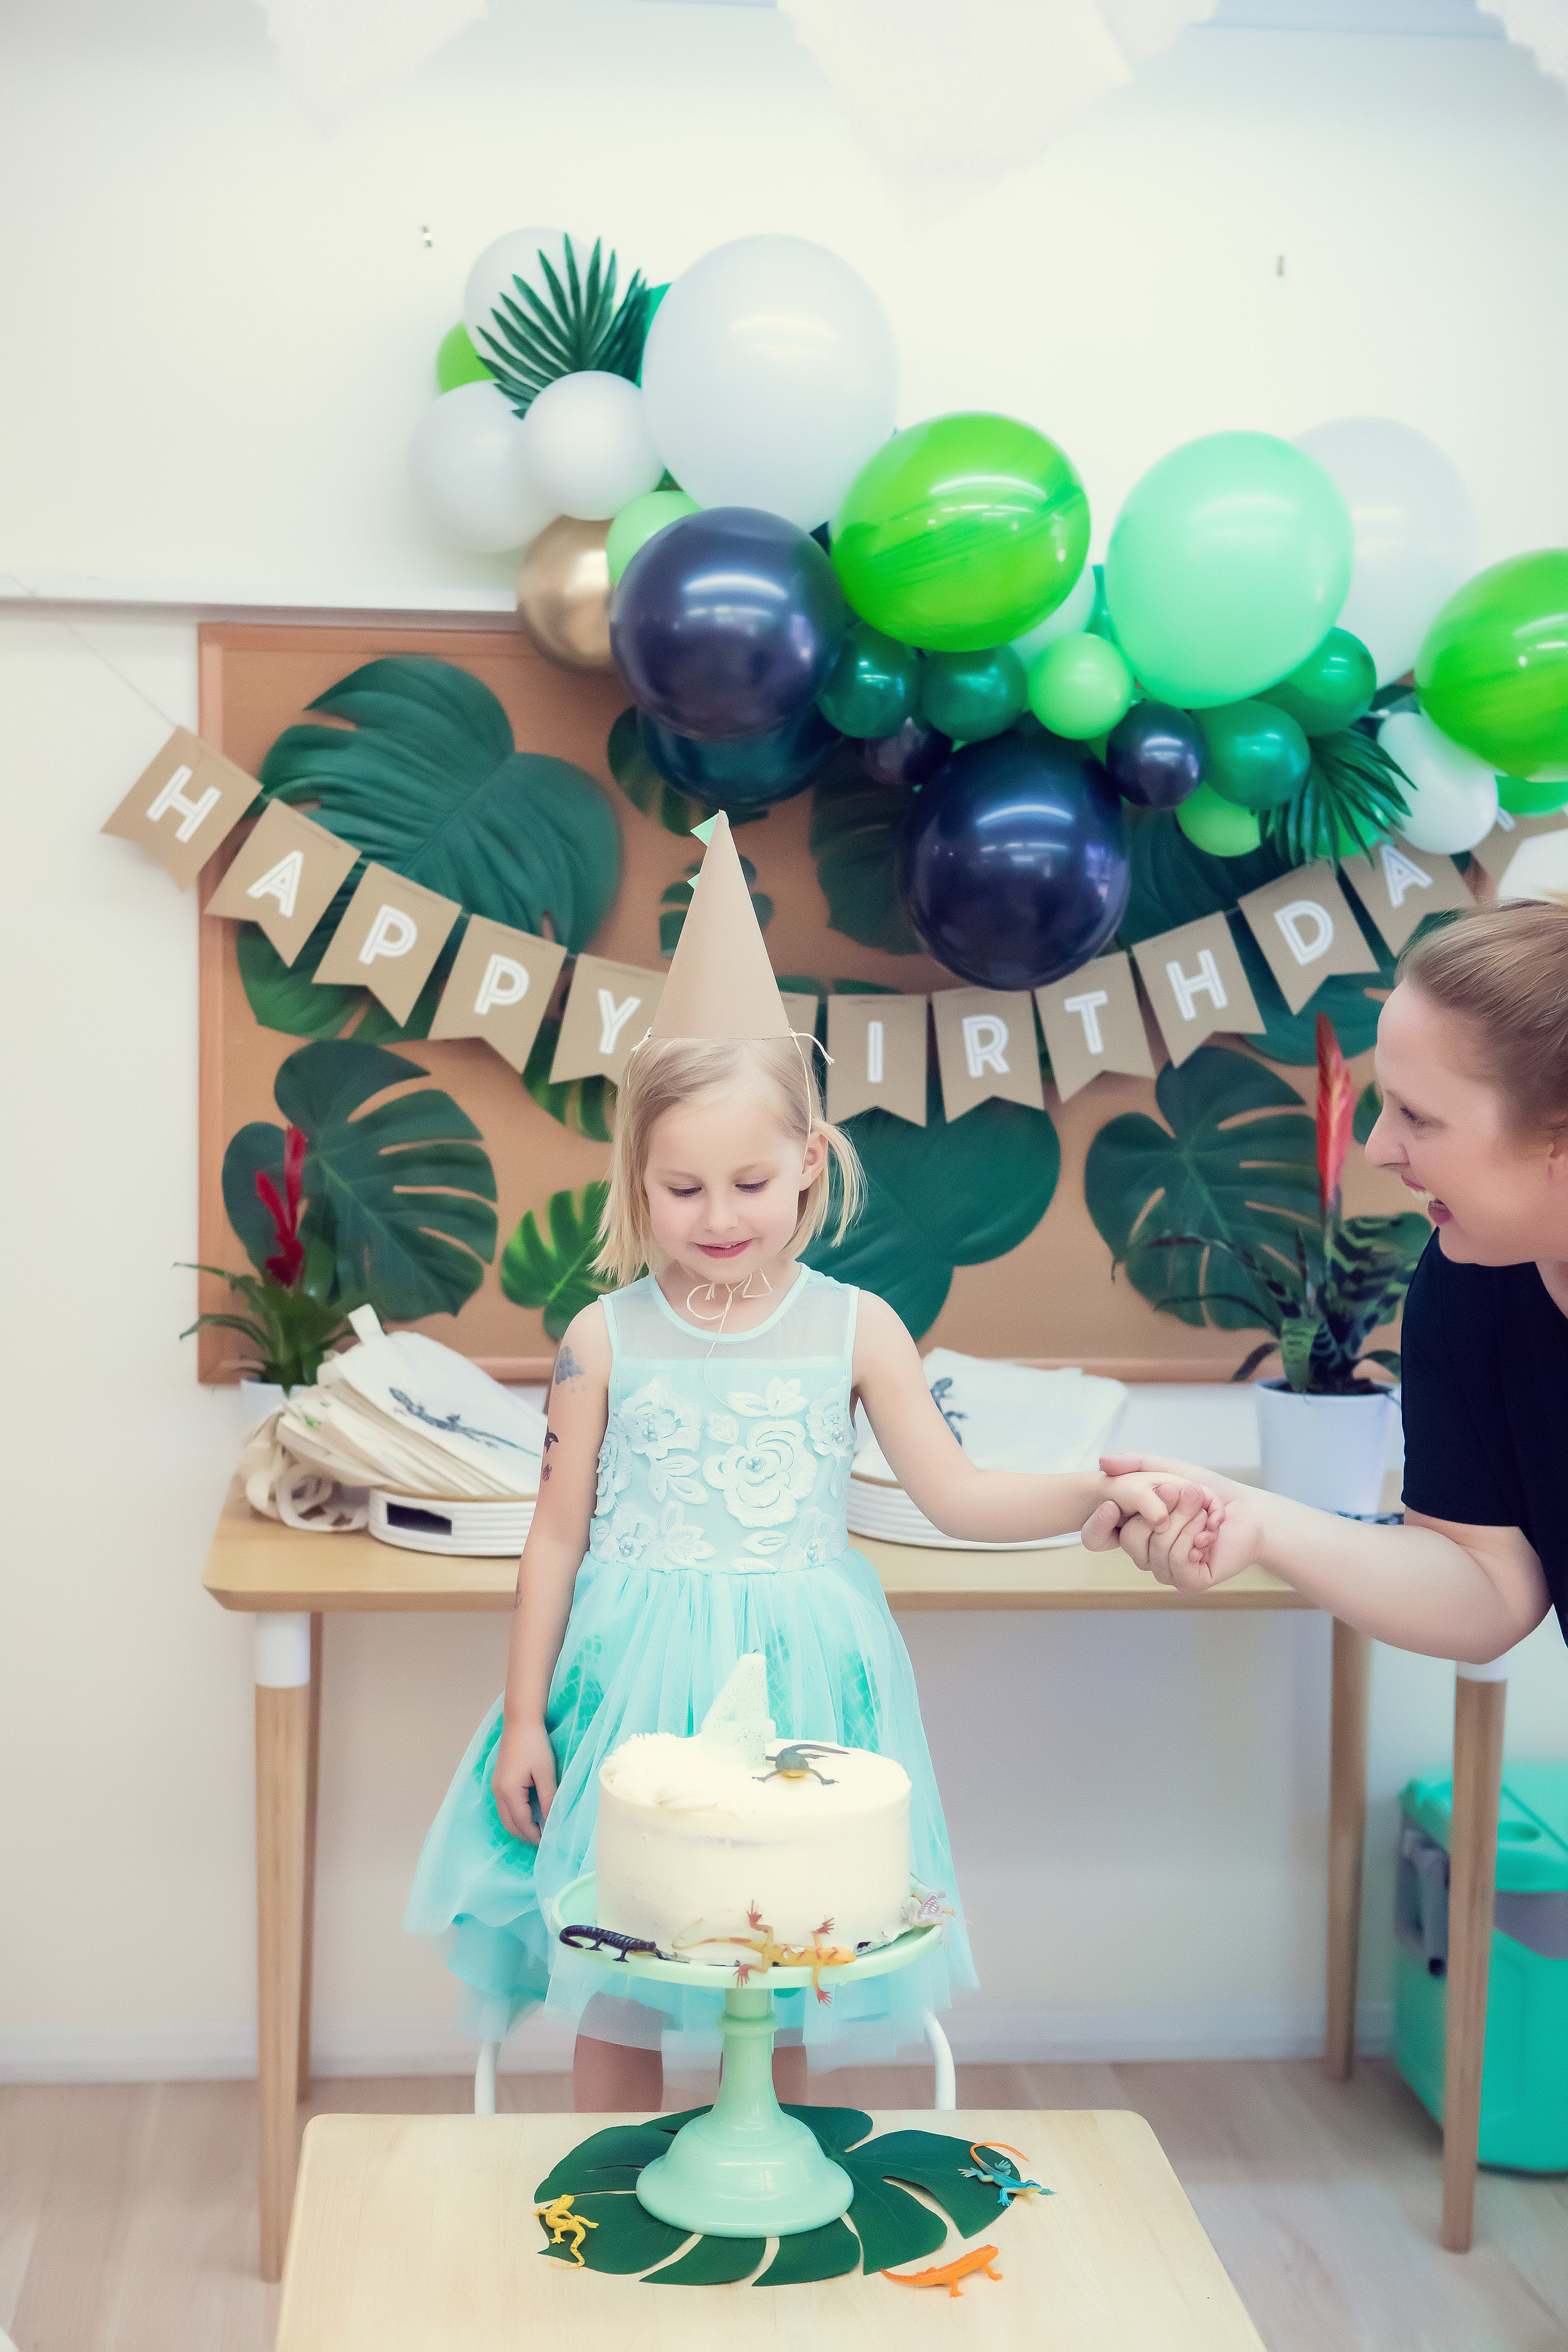 Linley 4th Birthday 290.jpg